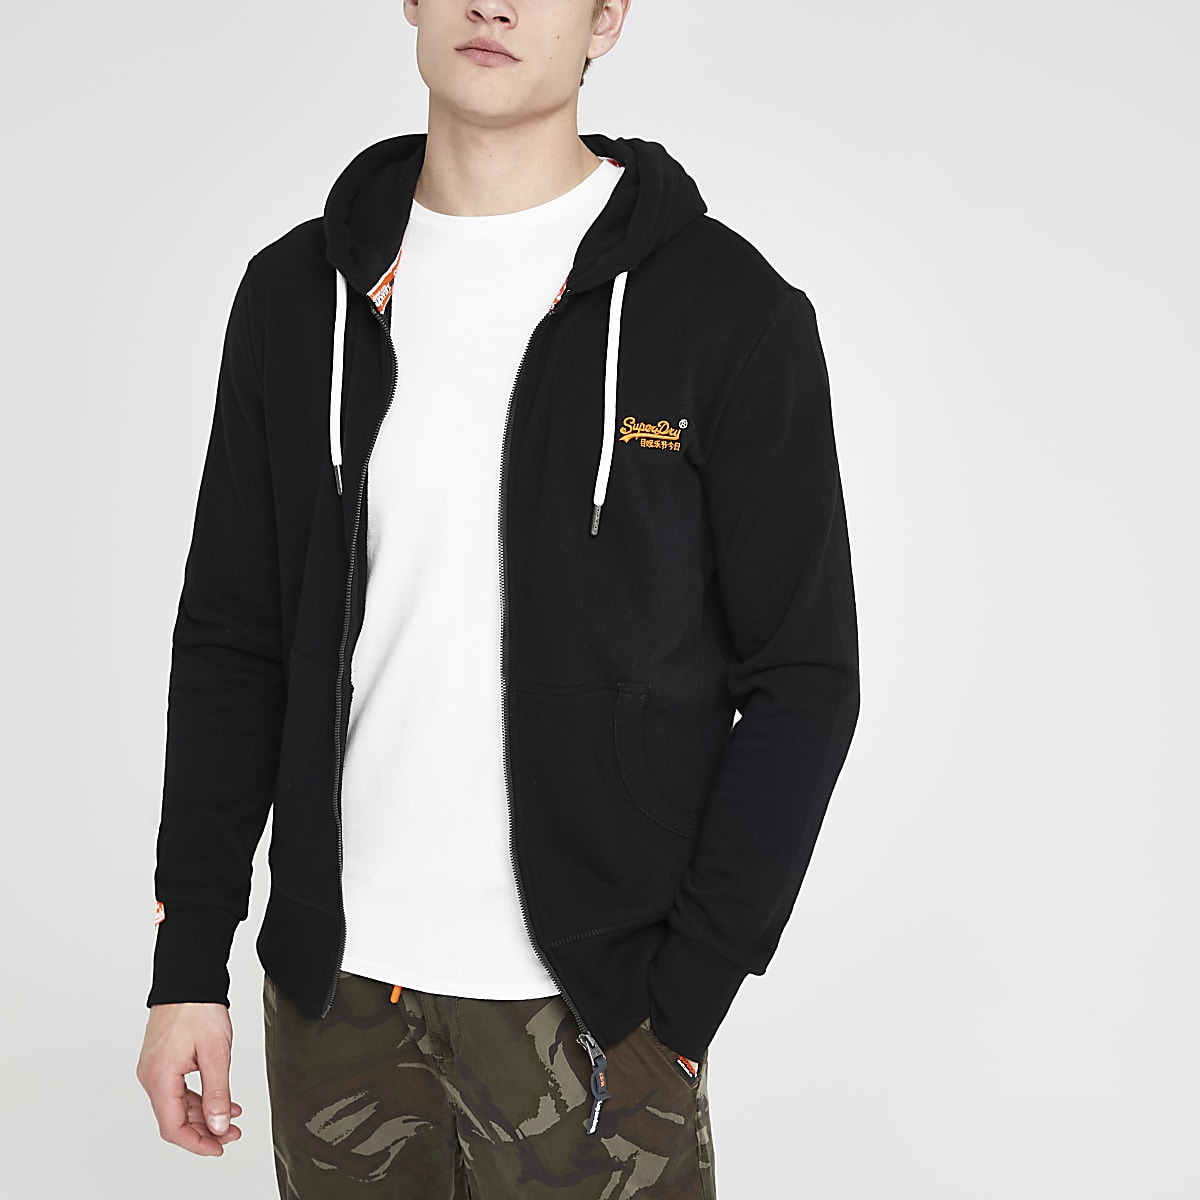 Superdry black zip up hoodie